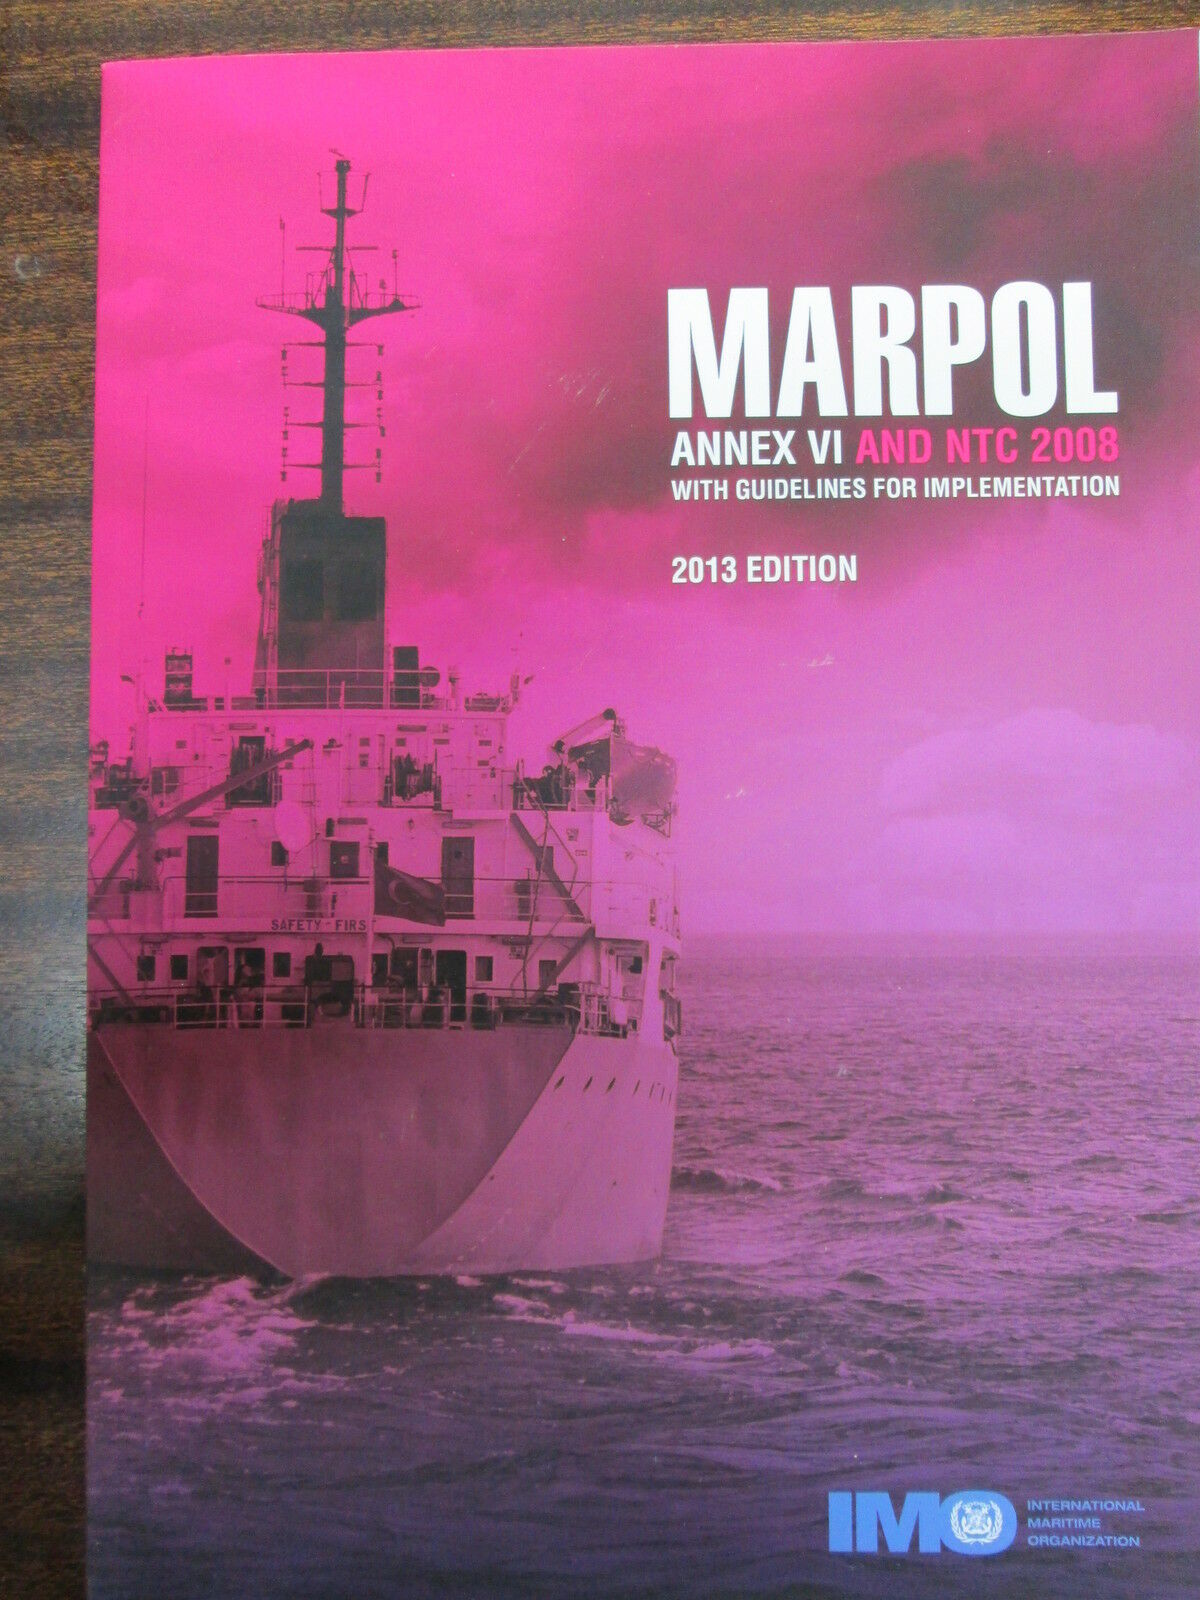 MARPOL Annex VI and NTC 2008 Guidelines for Implementation 2013 Edition IMO